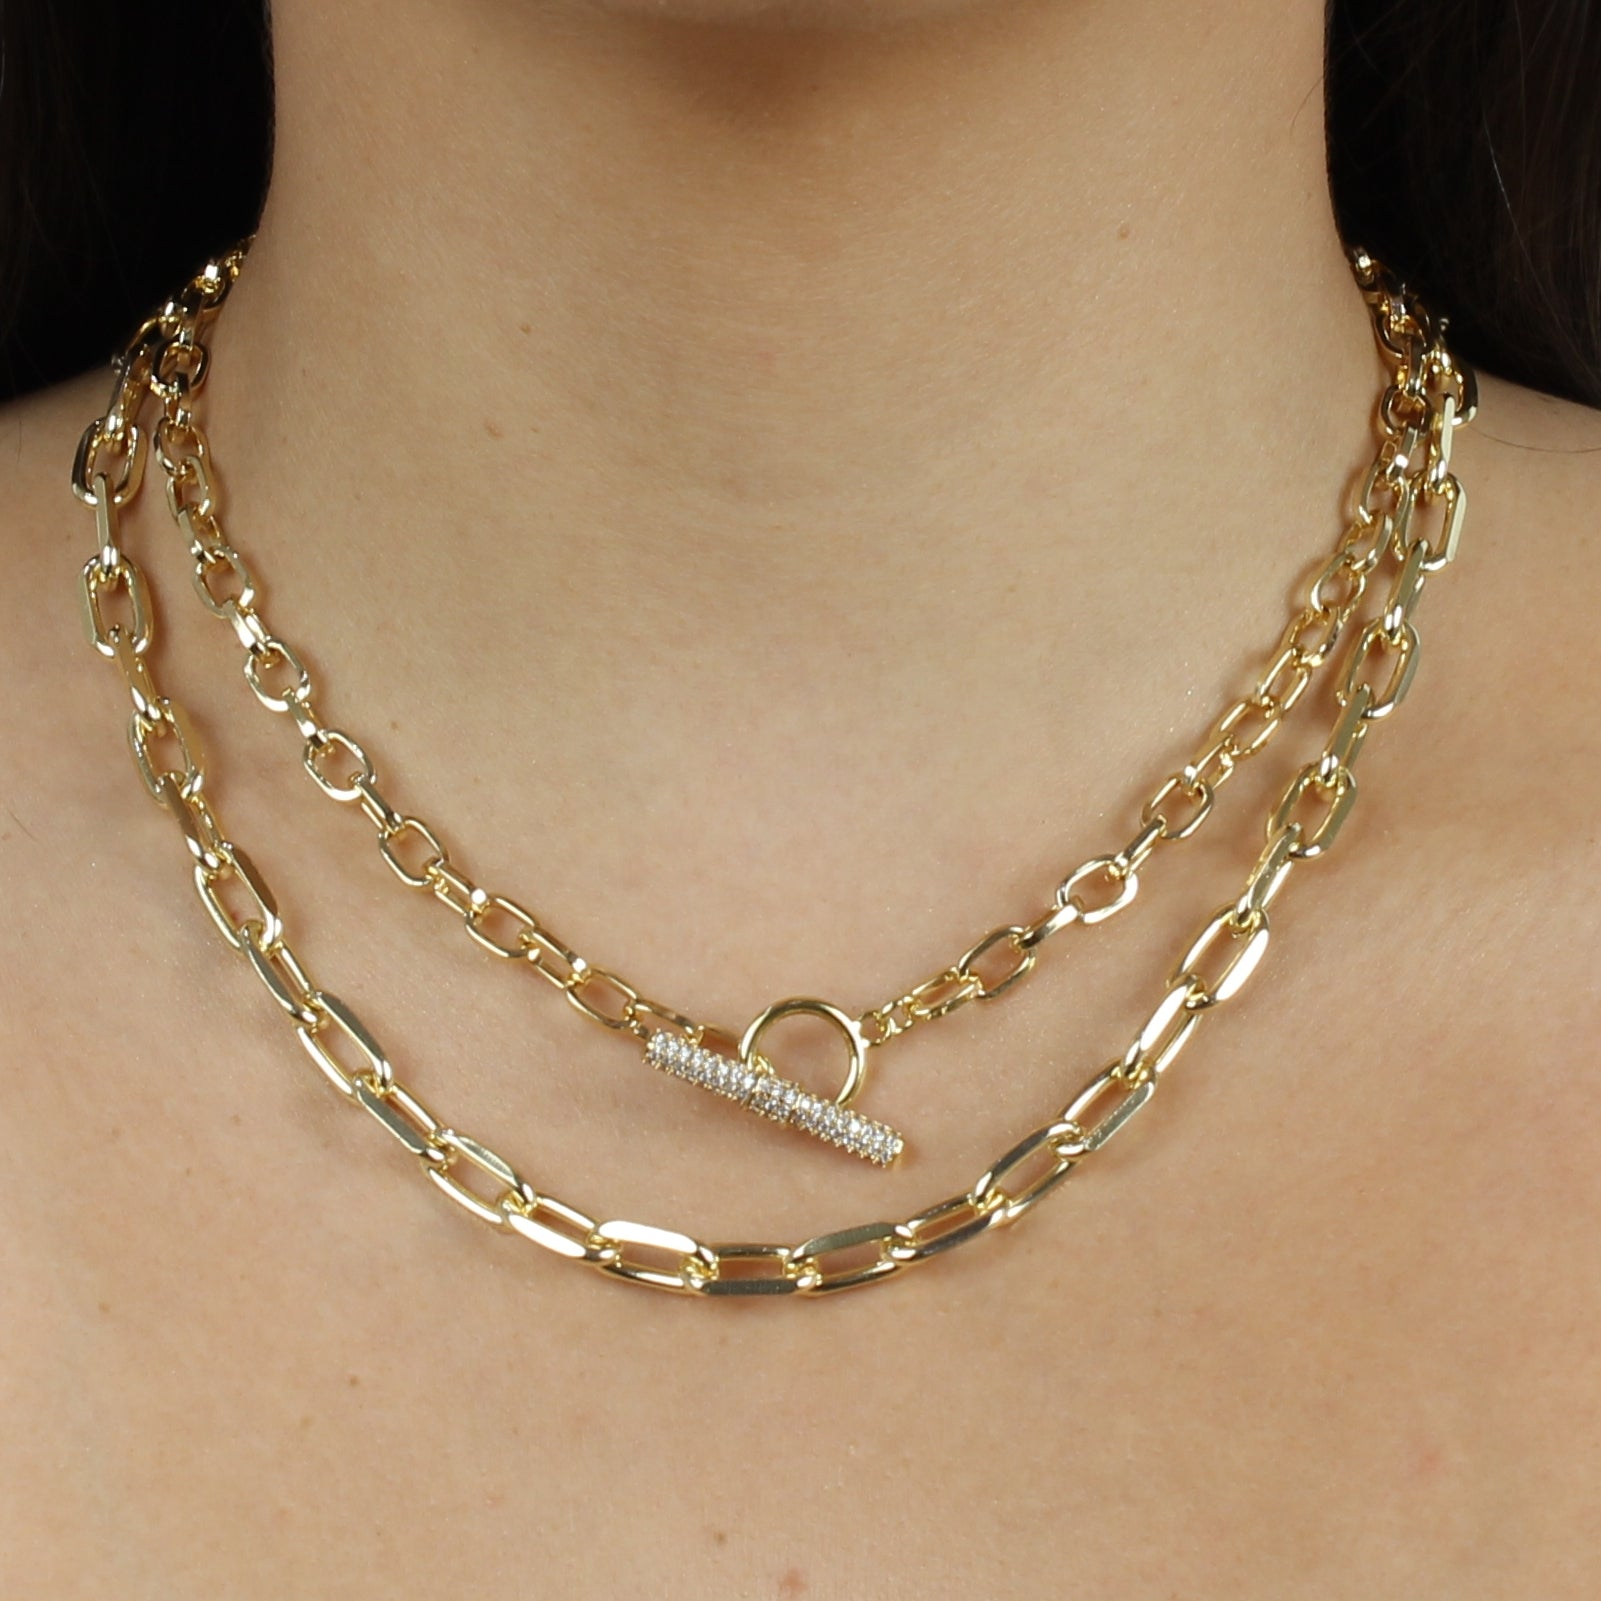 TOGGLE LOCK CHAIN CHOKER NECKLACE